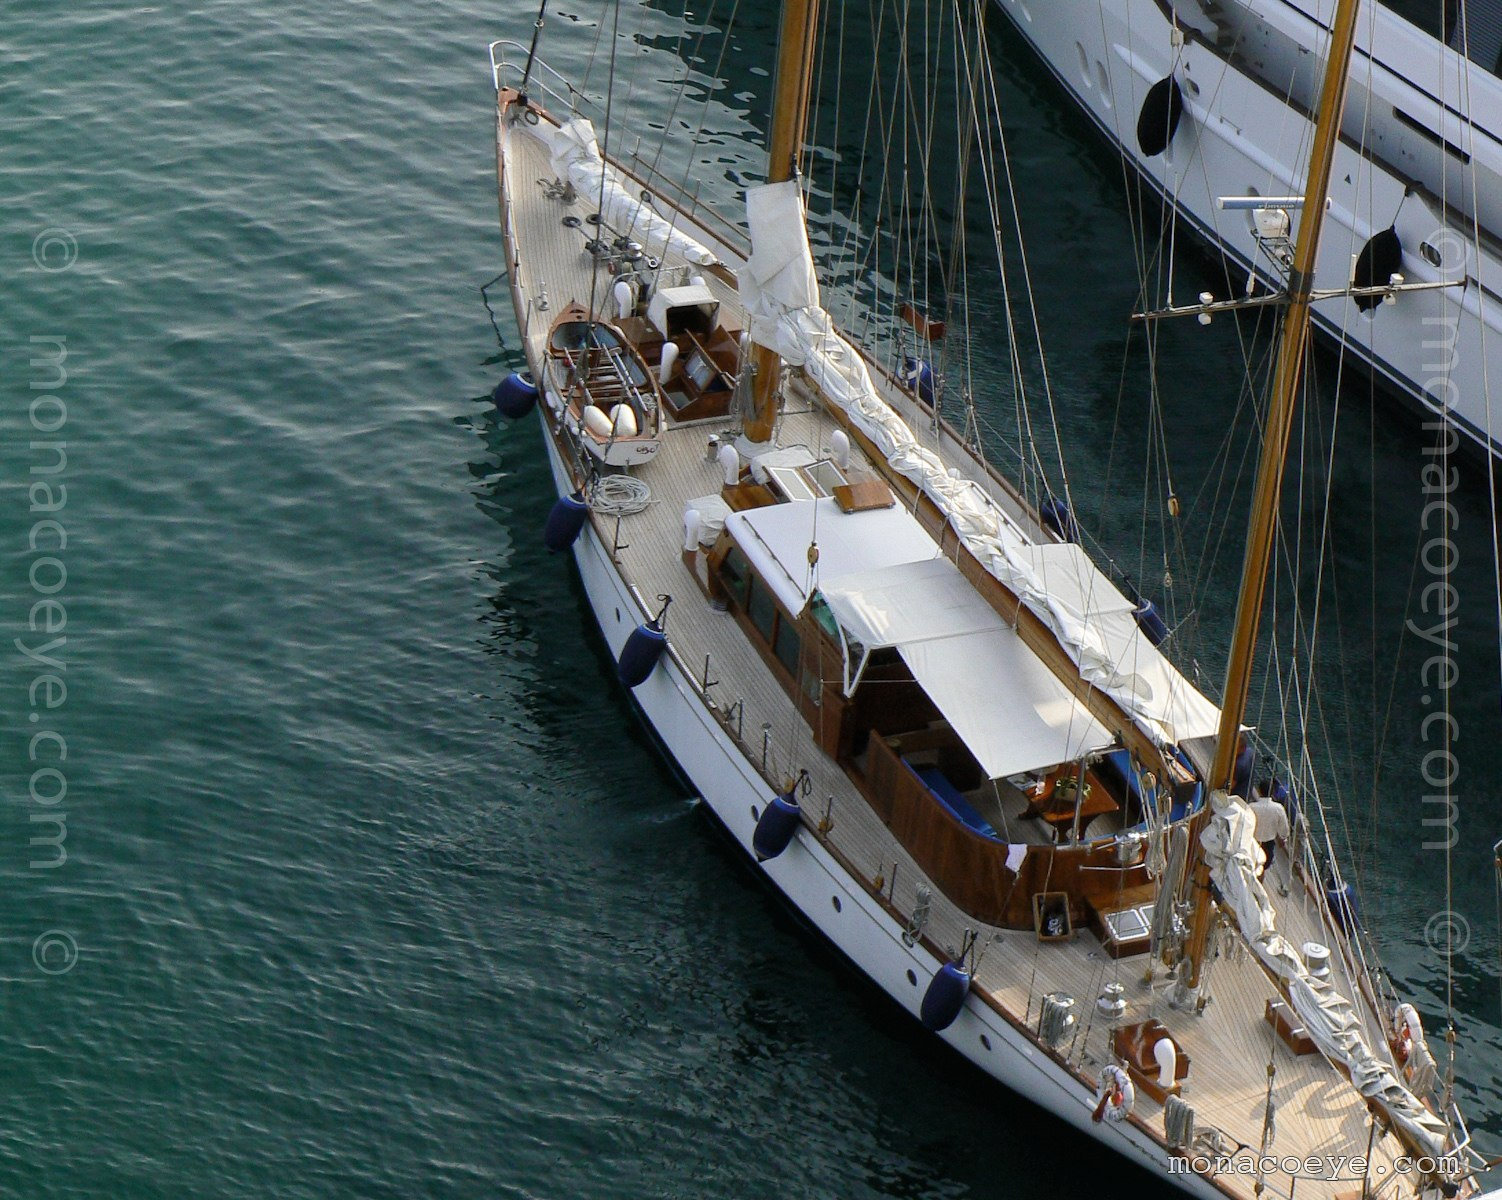 SY Wayfarer, classic sailing yacht, seen at the Monaco Yacht Show, during Classic Week 2007